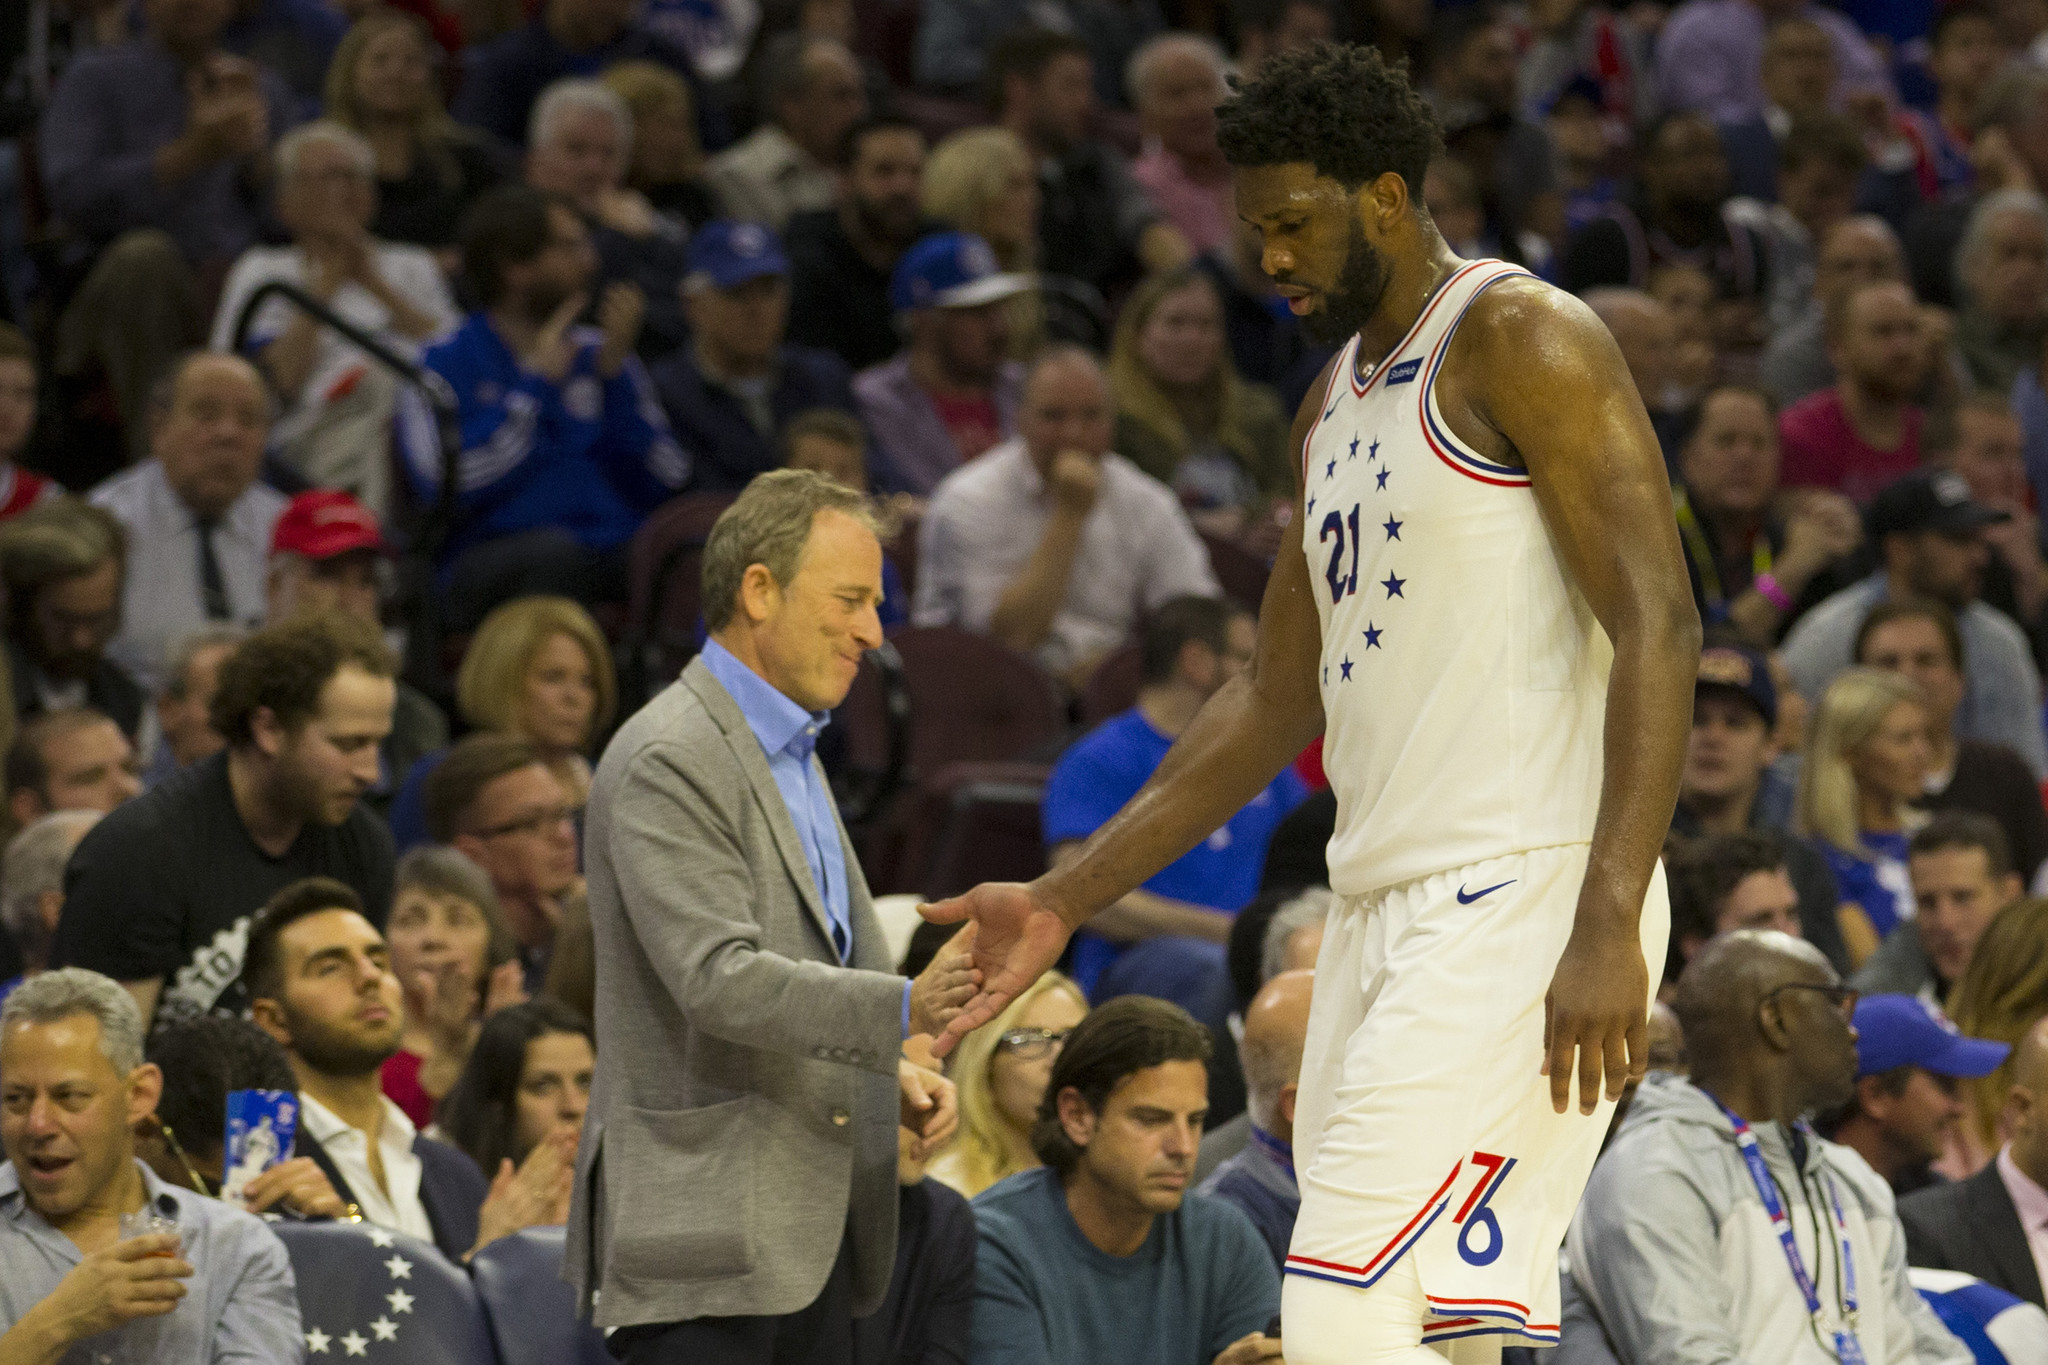 Sixers ownership finally did right by its employees, but only after getting shamed into it